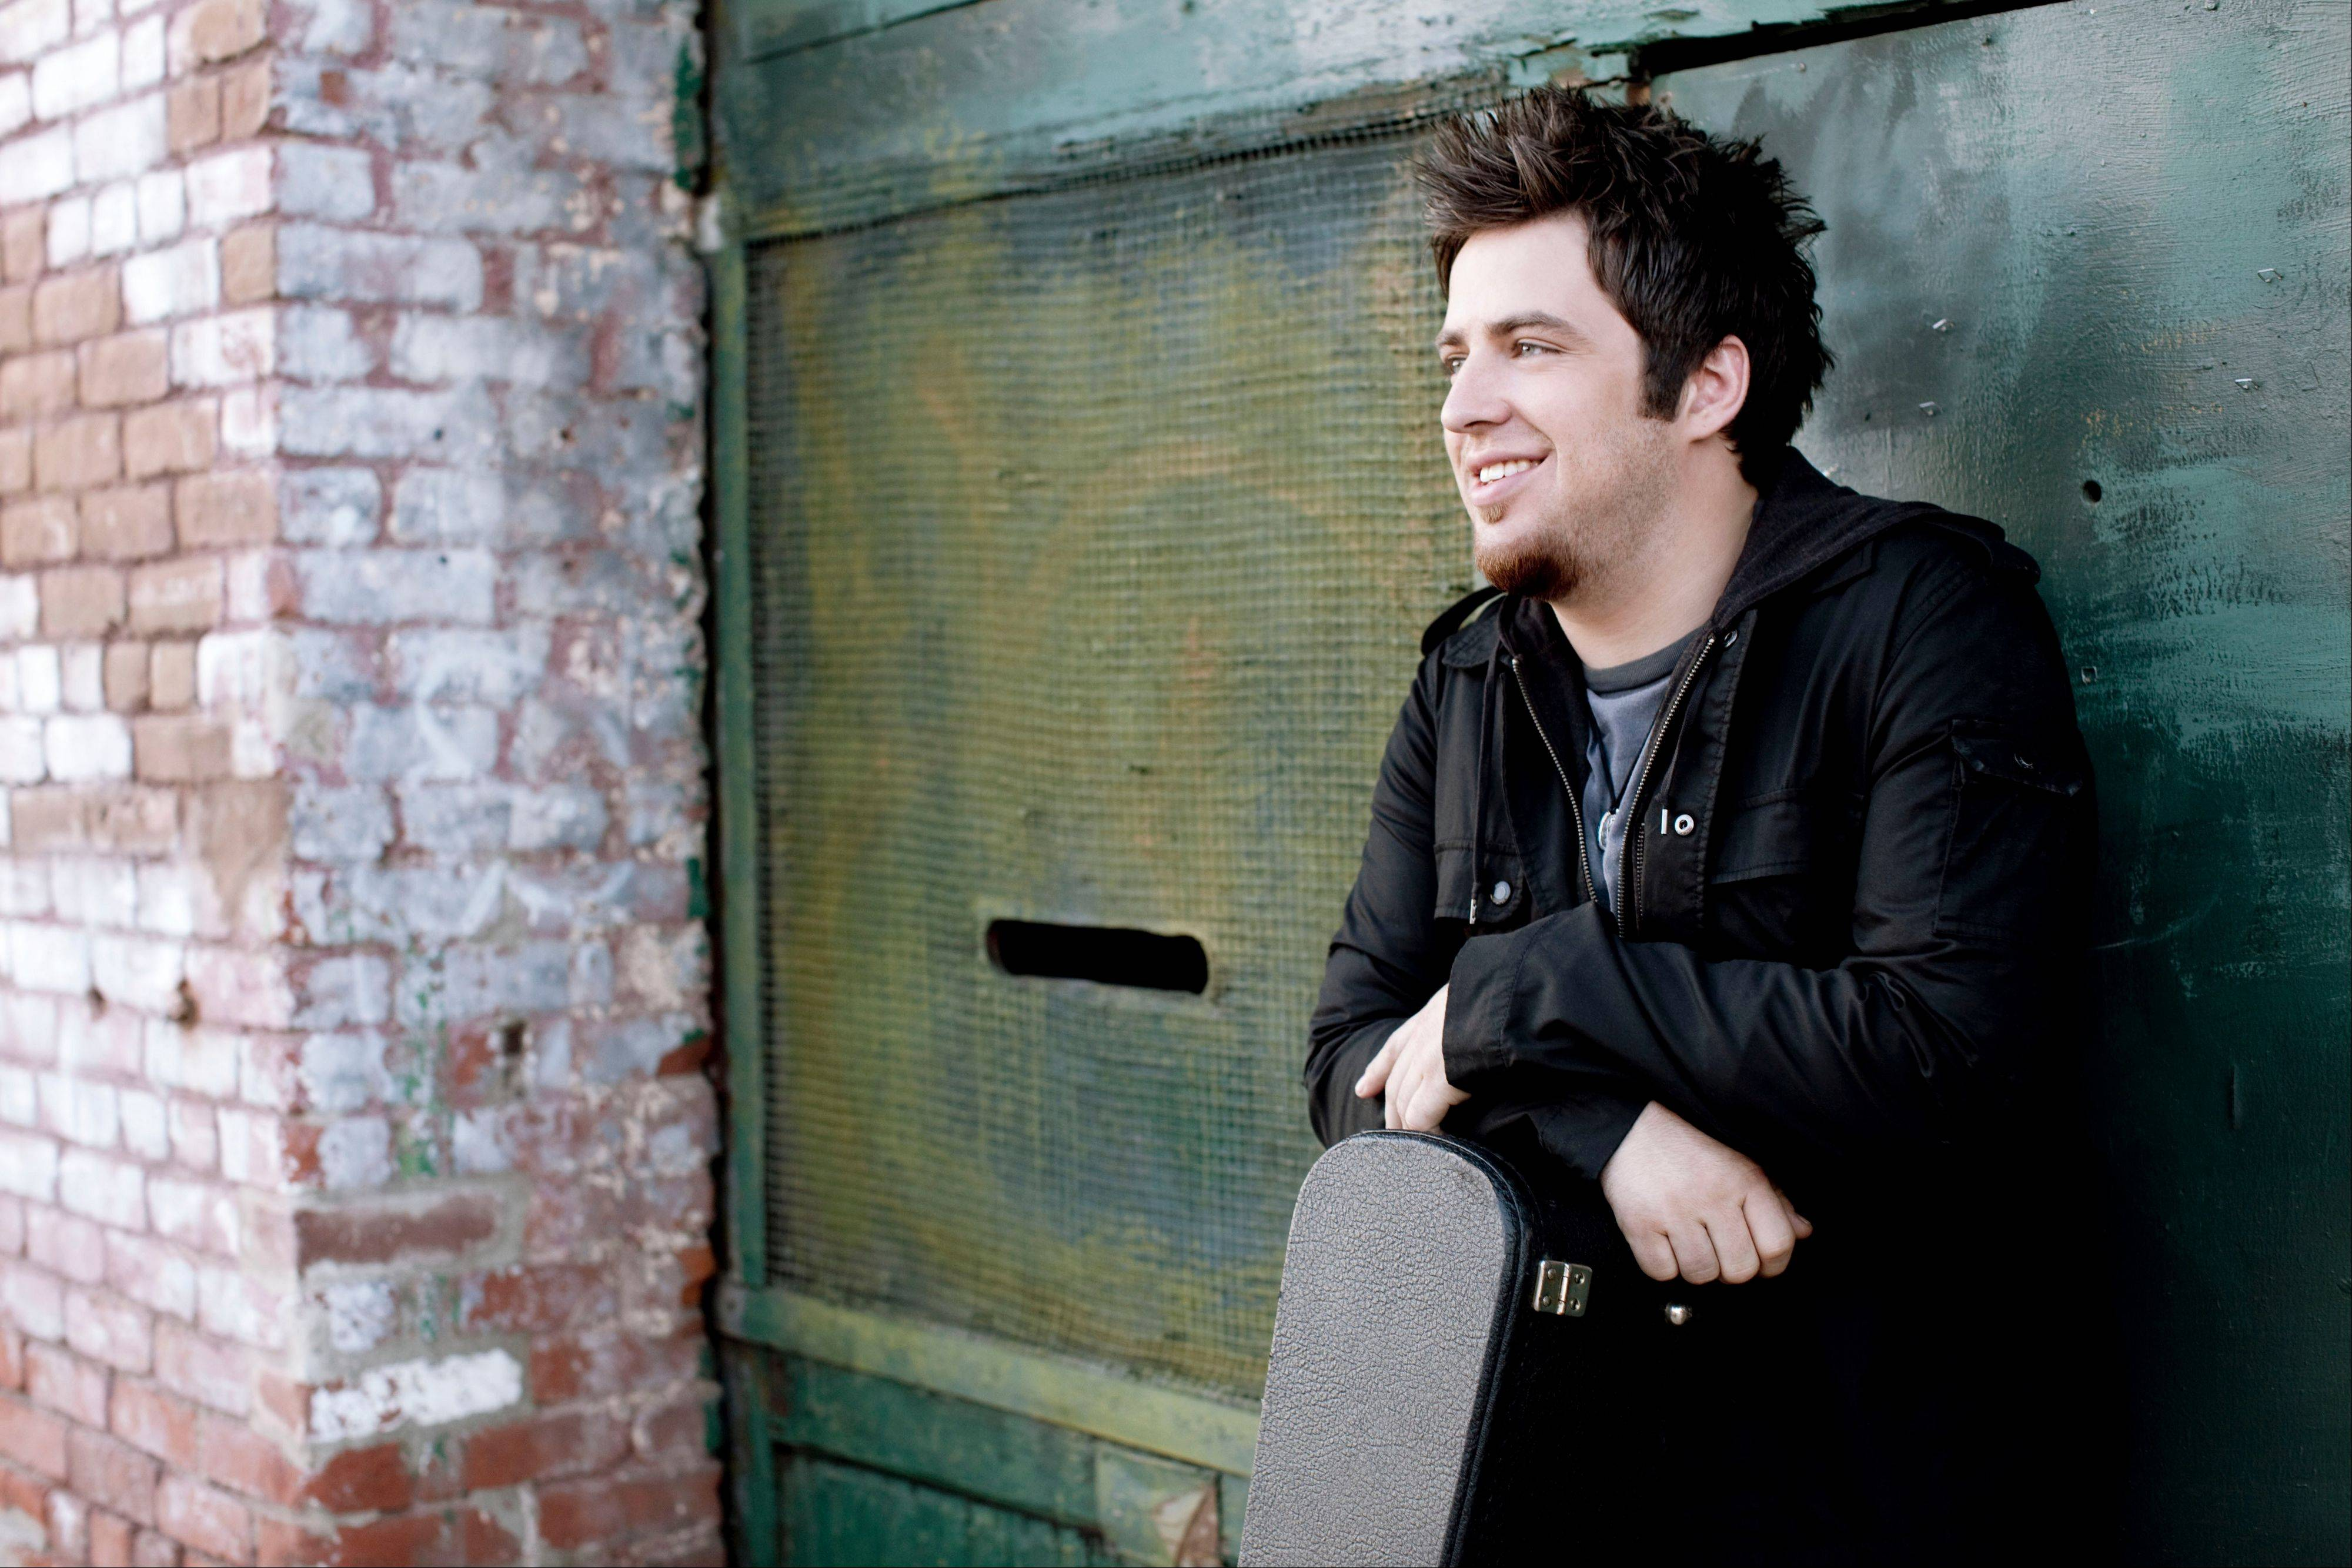 Suburban native Lee DeWyze will perform live next week at Six Flags Great America in Gurnee.